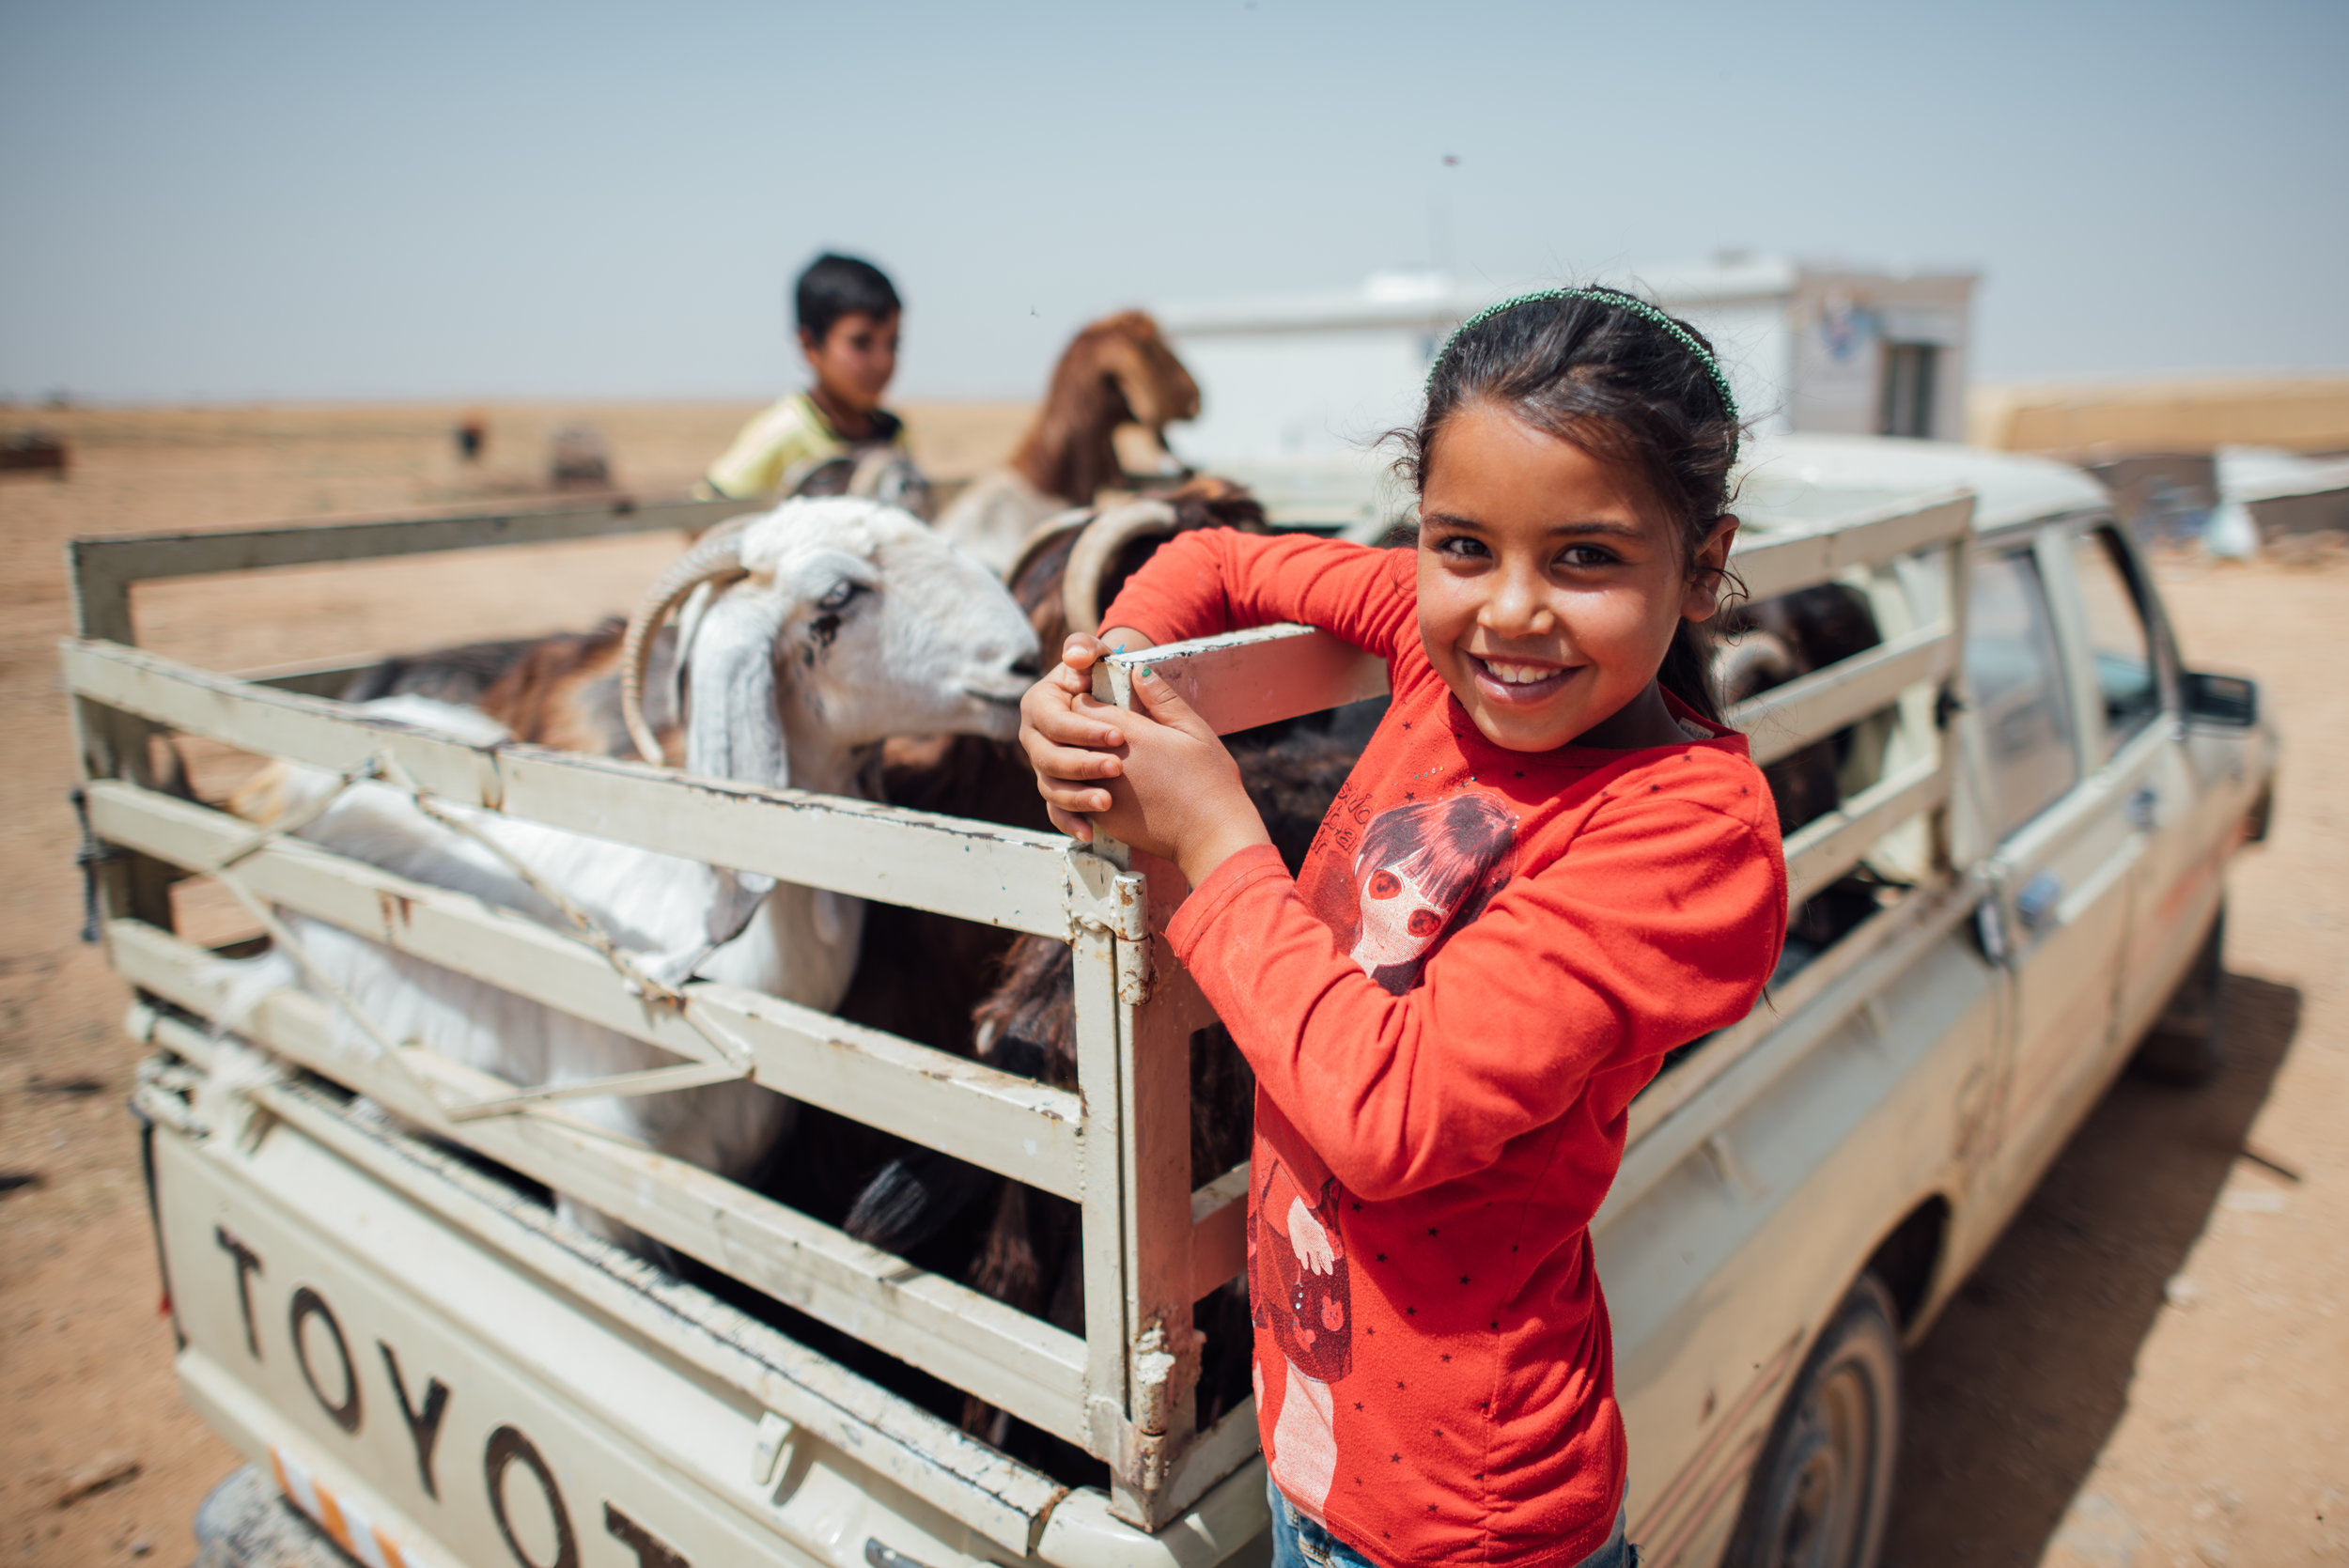 From LHI's May 2017 distribution in Jordan. Photo by Mike Walton.